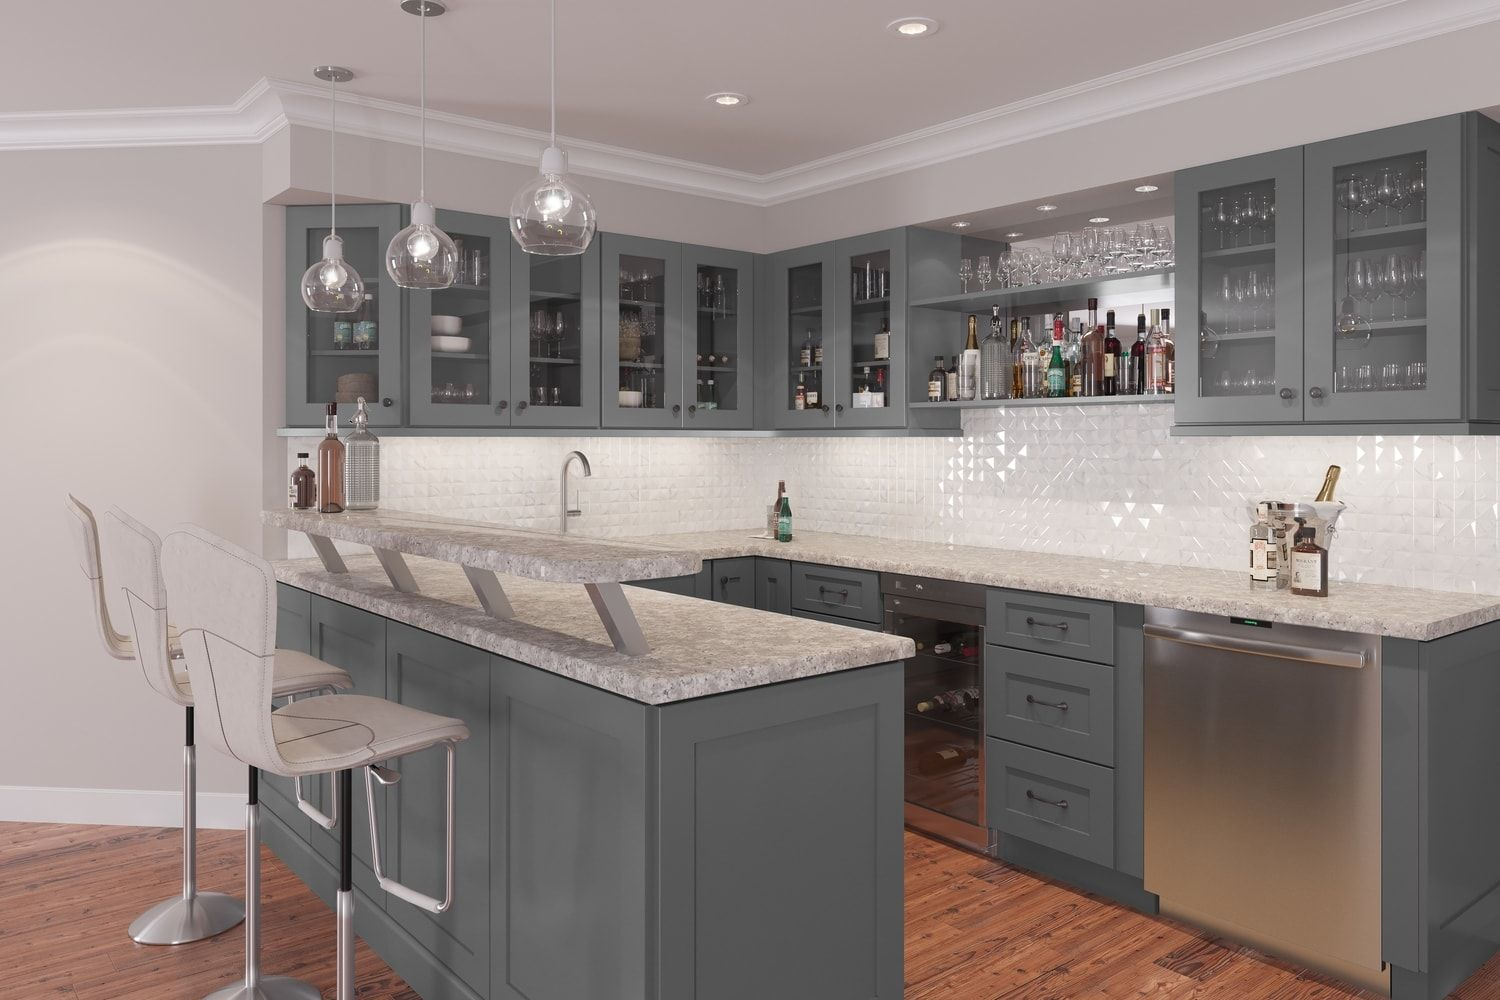 Graphite Grey Shaker Ready To Assemble Bar Room Cabinets Bar Room Cabinetry Va Shaker Style Kitchen Cabinets Kitchen Cabinet Styles Shaker Style Kitchens